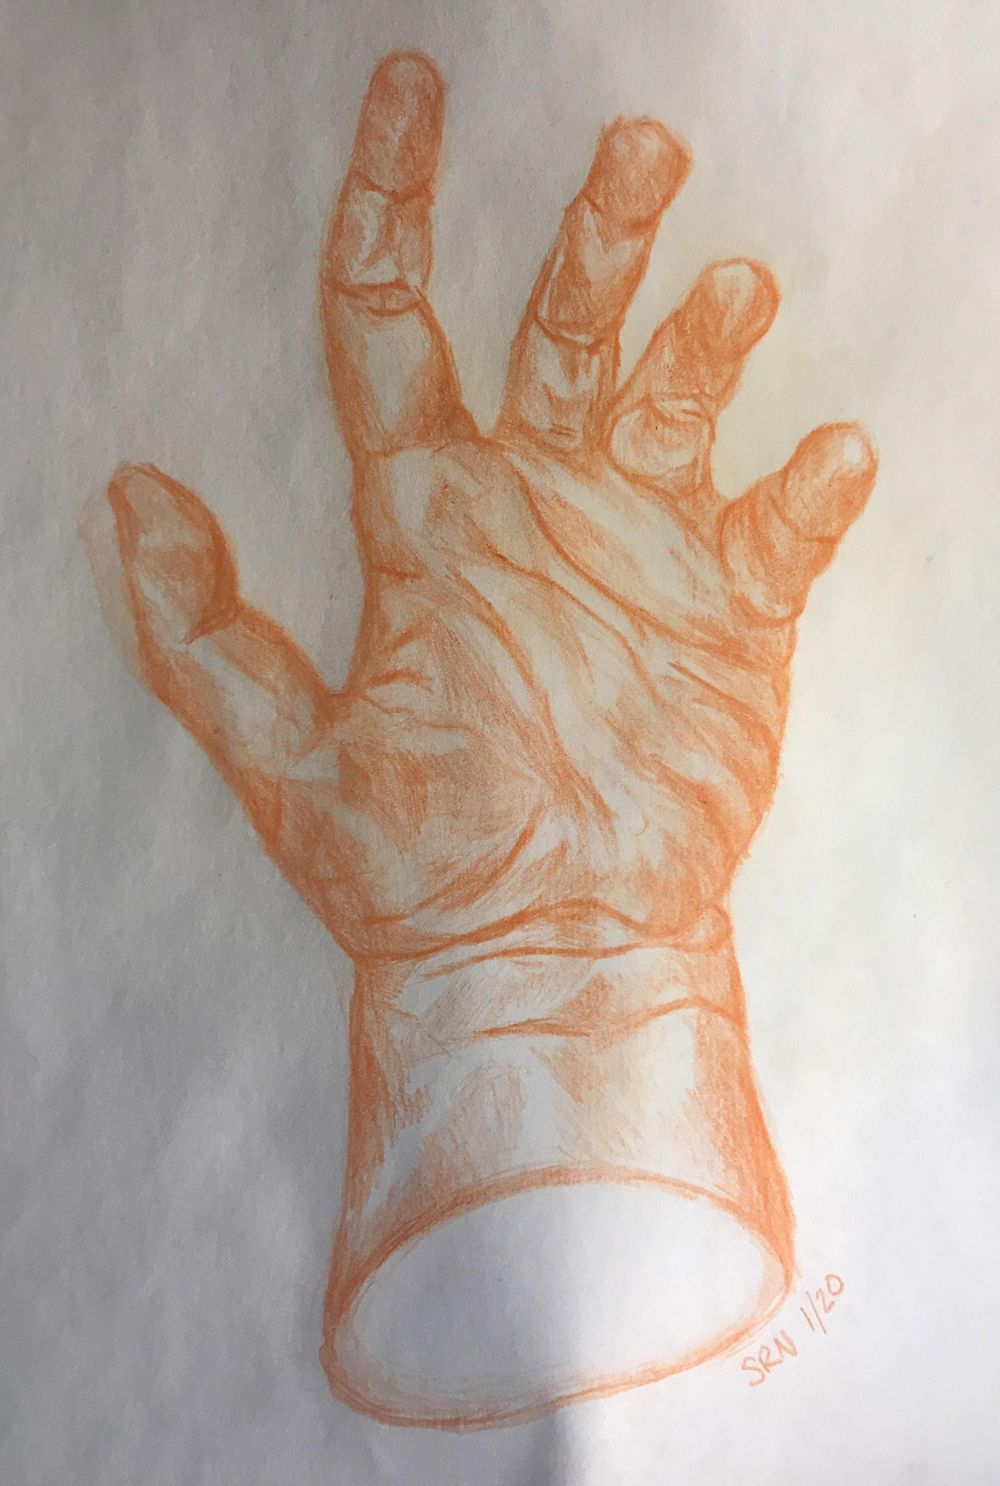 Drawing Hands Class Project - - image 2 - student project